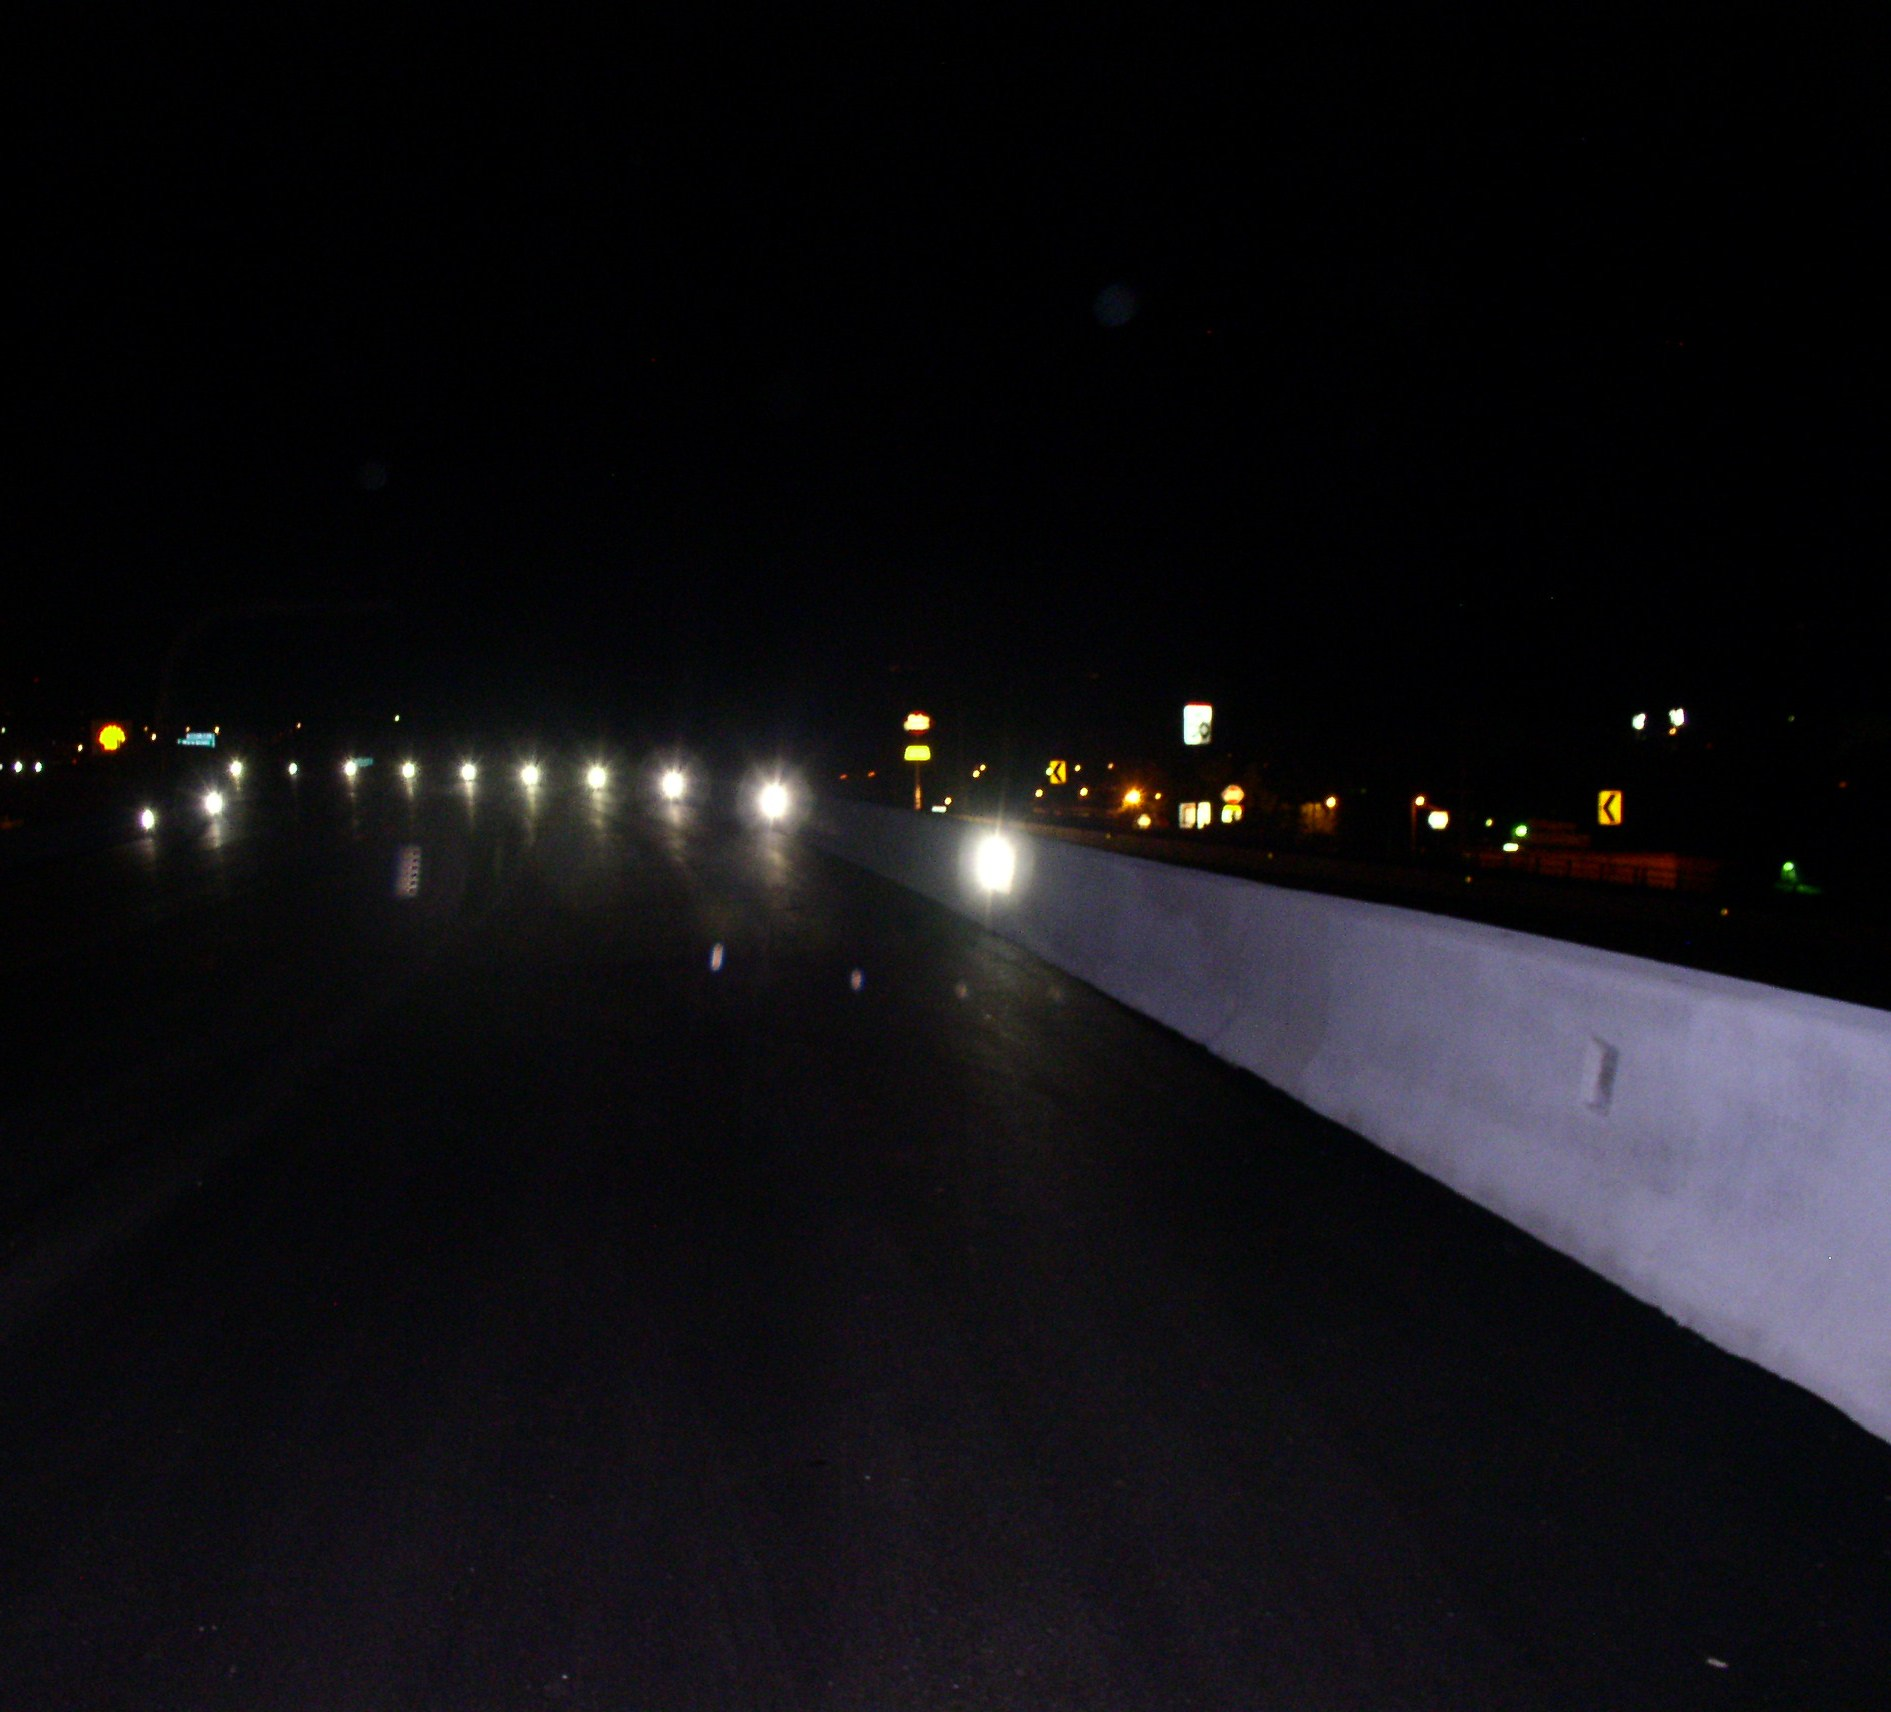 Highway - night research photo